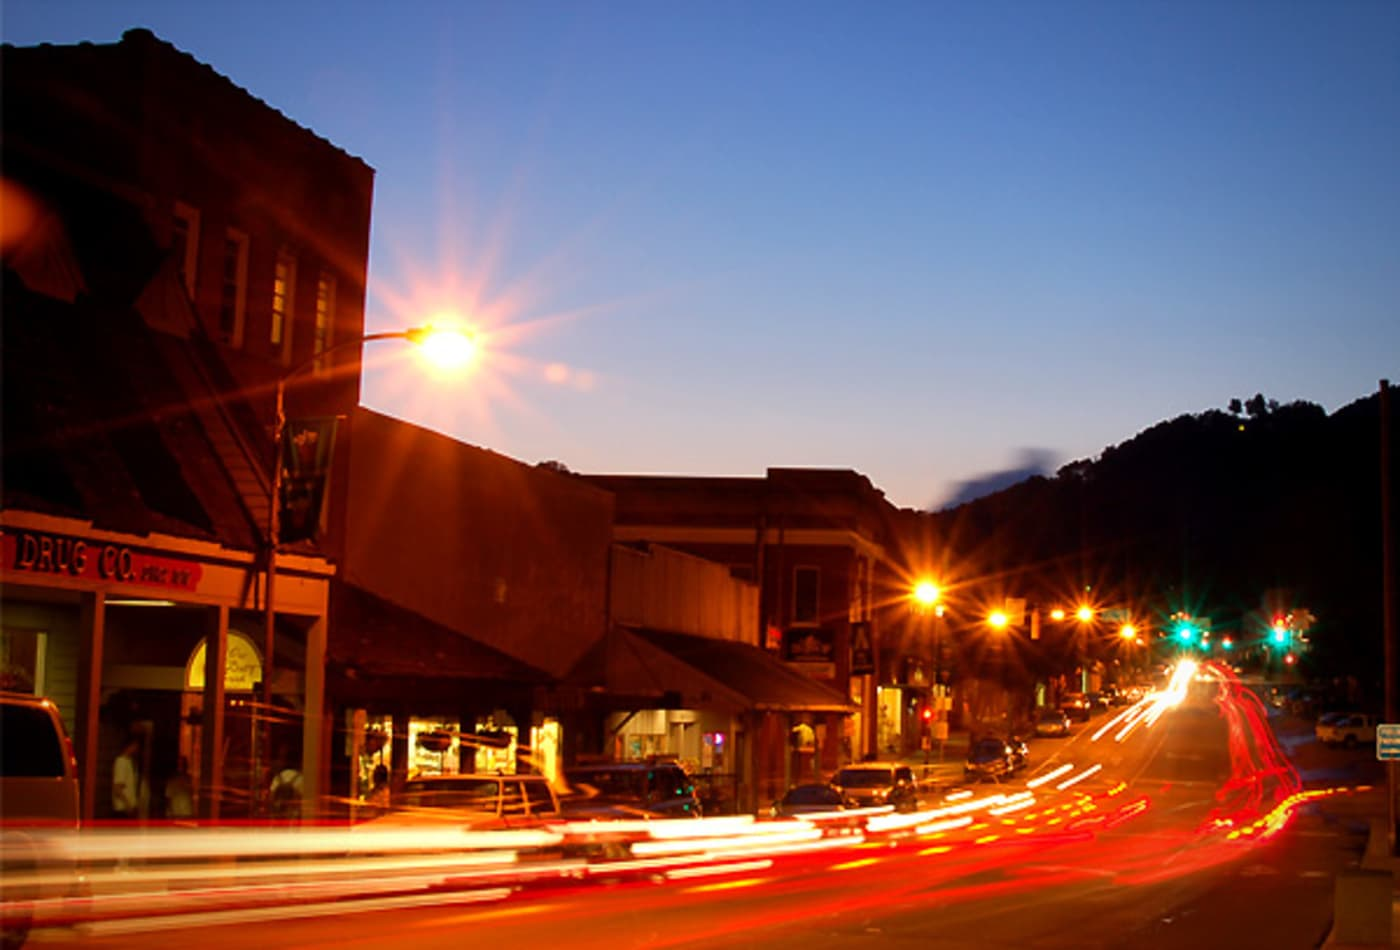 SS-Most-Expensive-College-Towns-Boone-NC.jpg